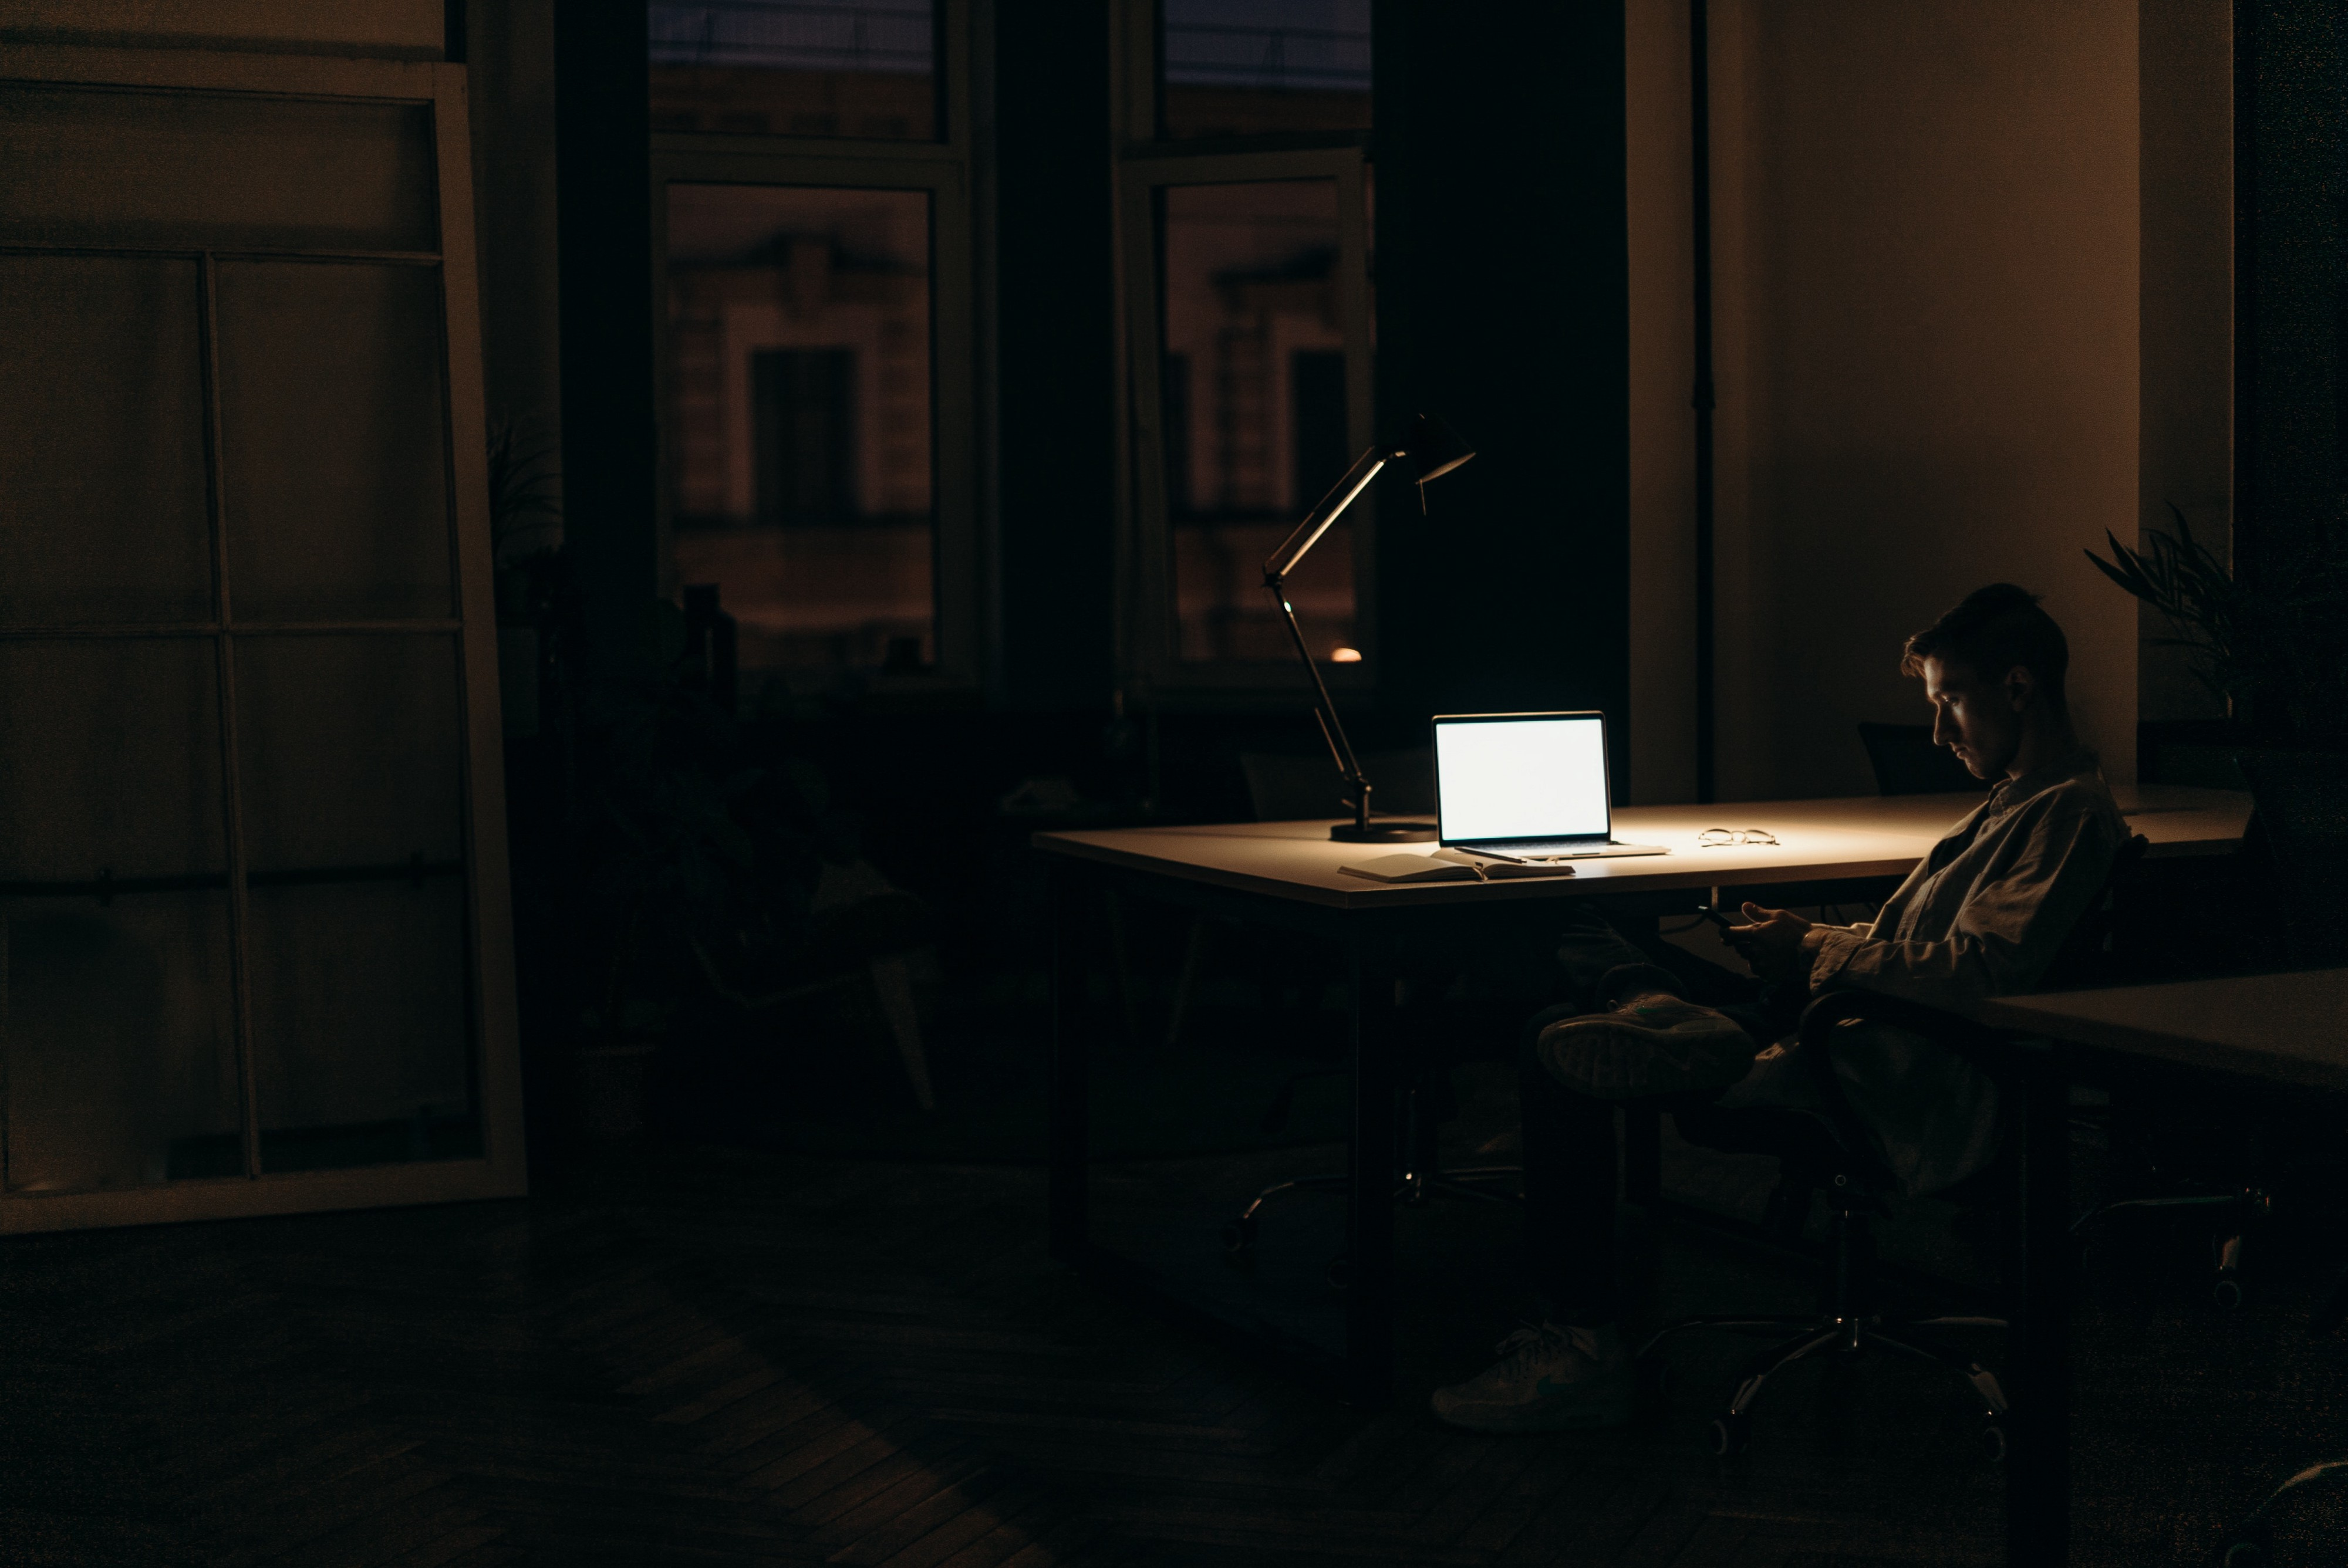 A man sits in the dark; his devices his only sources of comfort. The loneliness shrouds him together with the darkness.